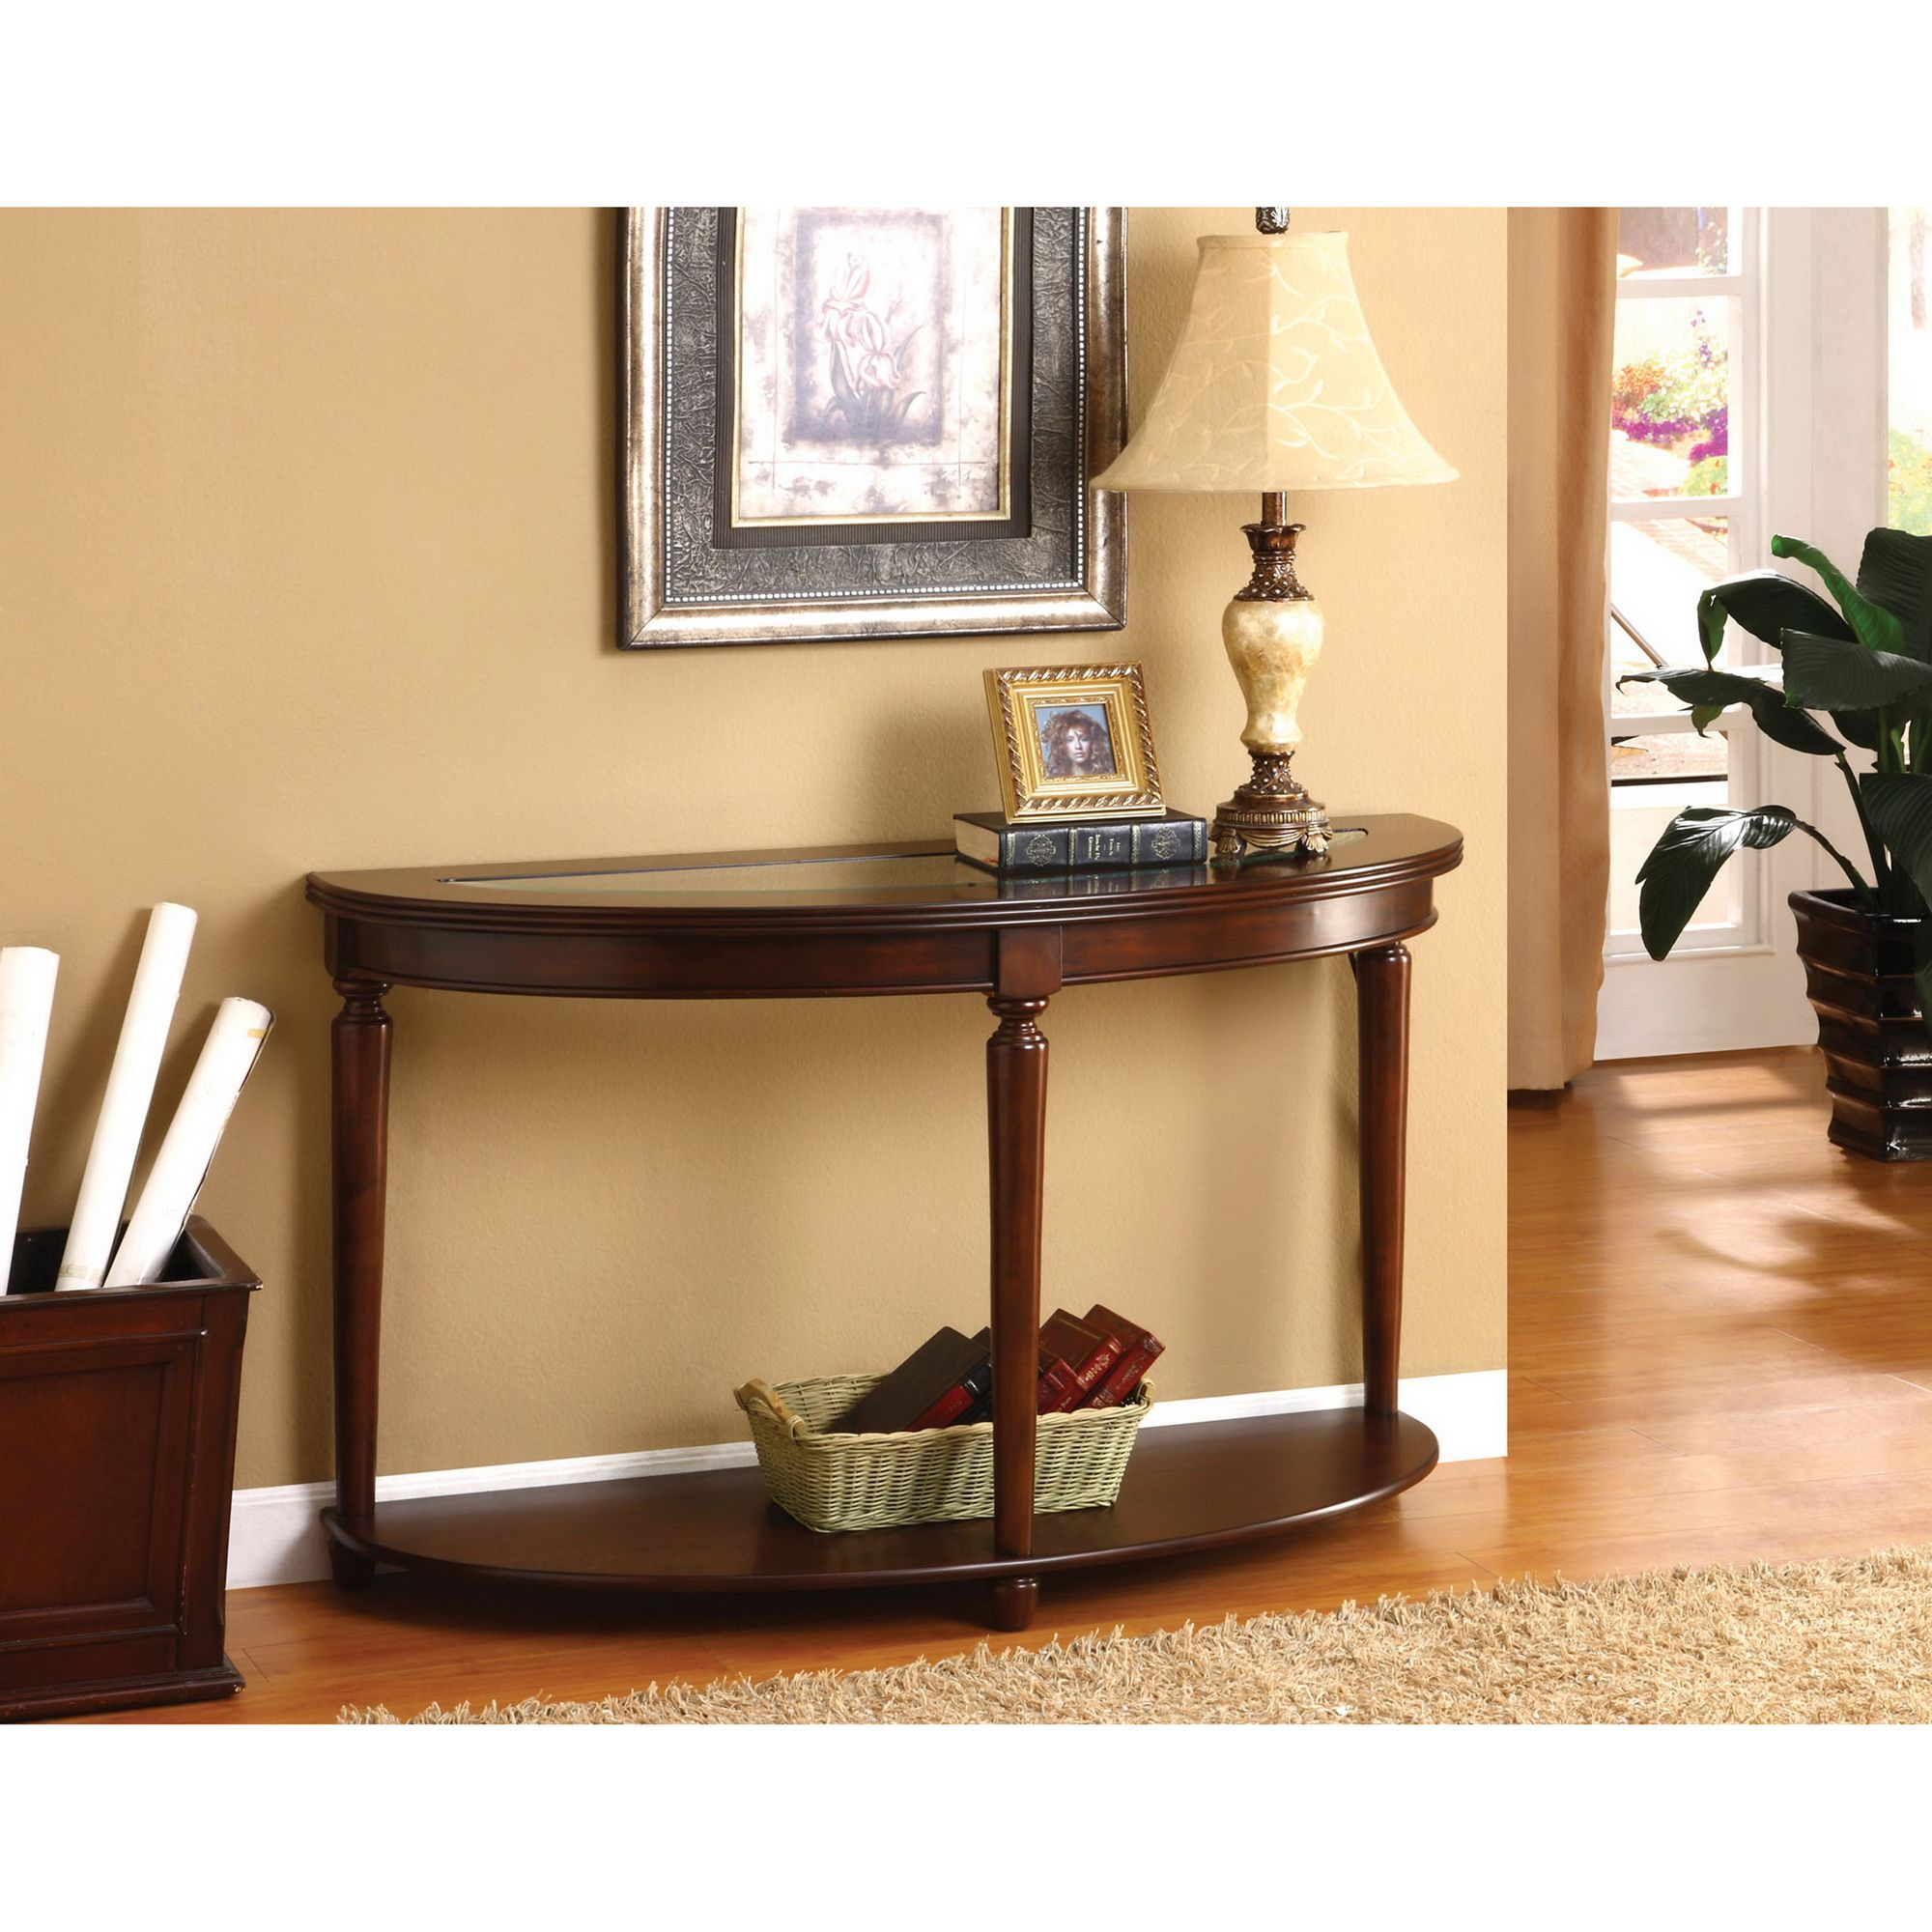 Lovely This Beautiful Console Table Features A Crescent Shape And A Rich, Dark  Cherry Finish. Solid Ball Feet Stabilize This Handsome Entry Way Table.